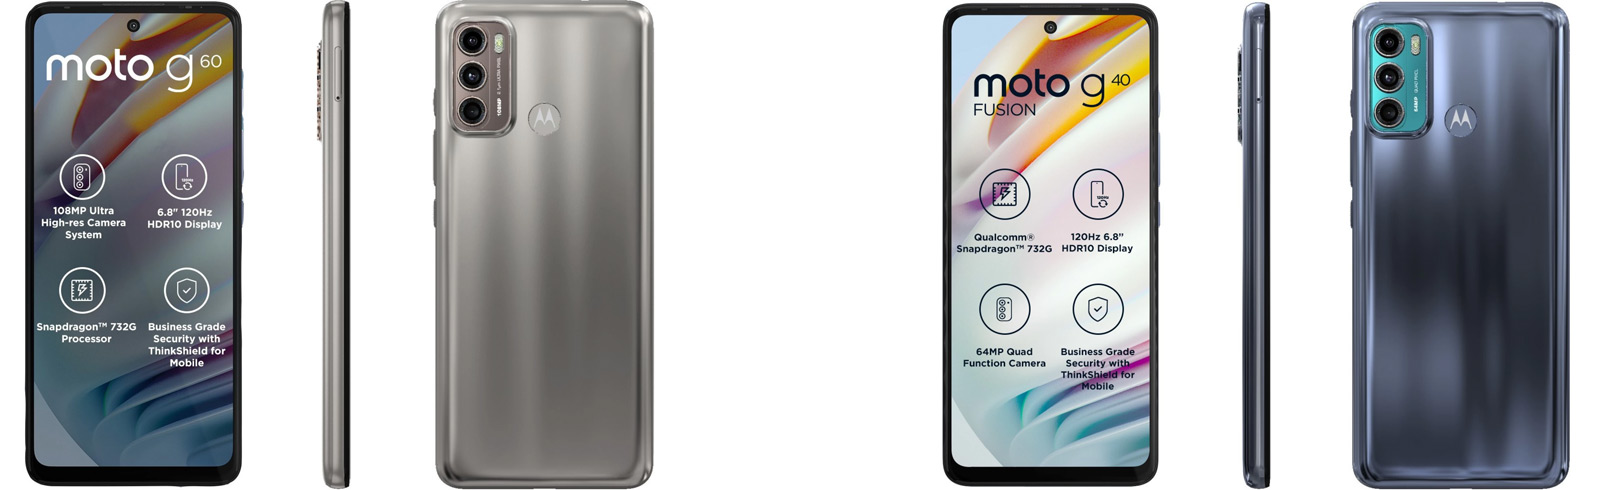 Motorola Moto G60 and Moto G40 Fusion are launched in India